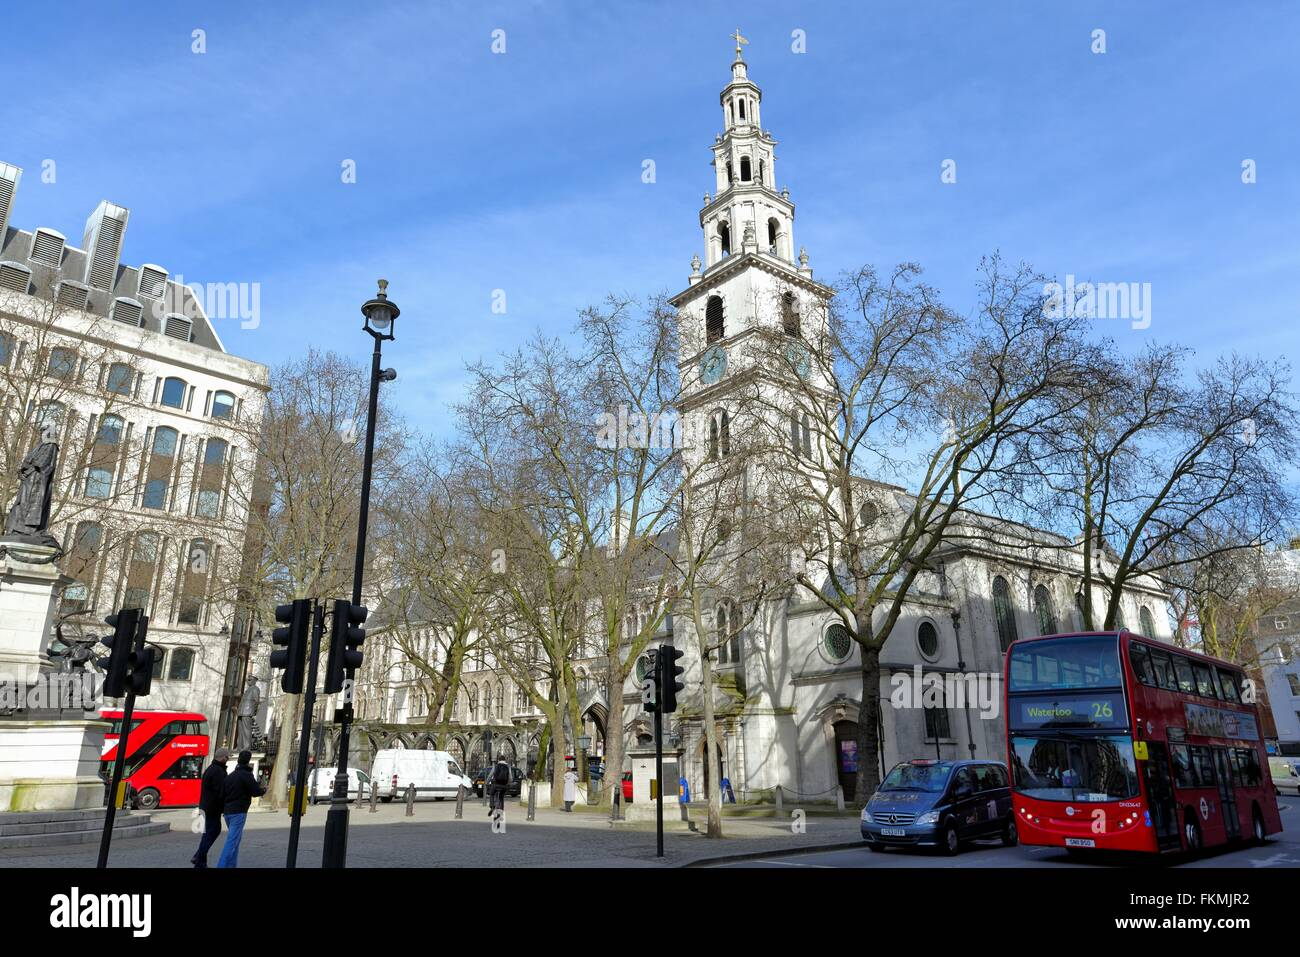 St. Clement Danes church The Strand central London - Stock Image